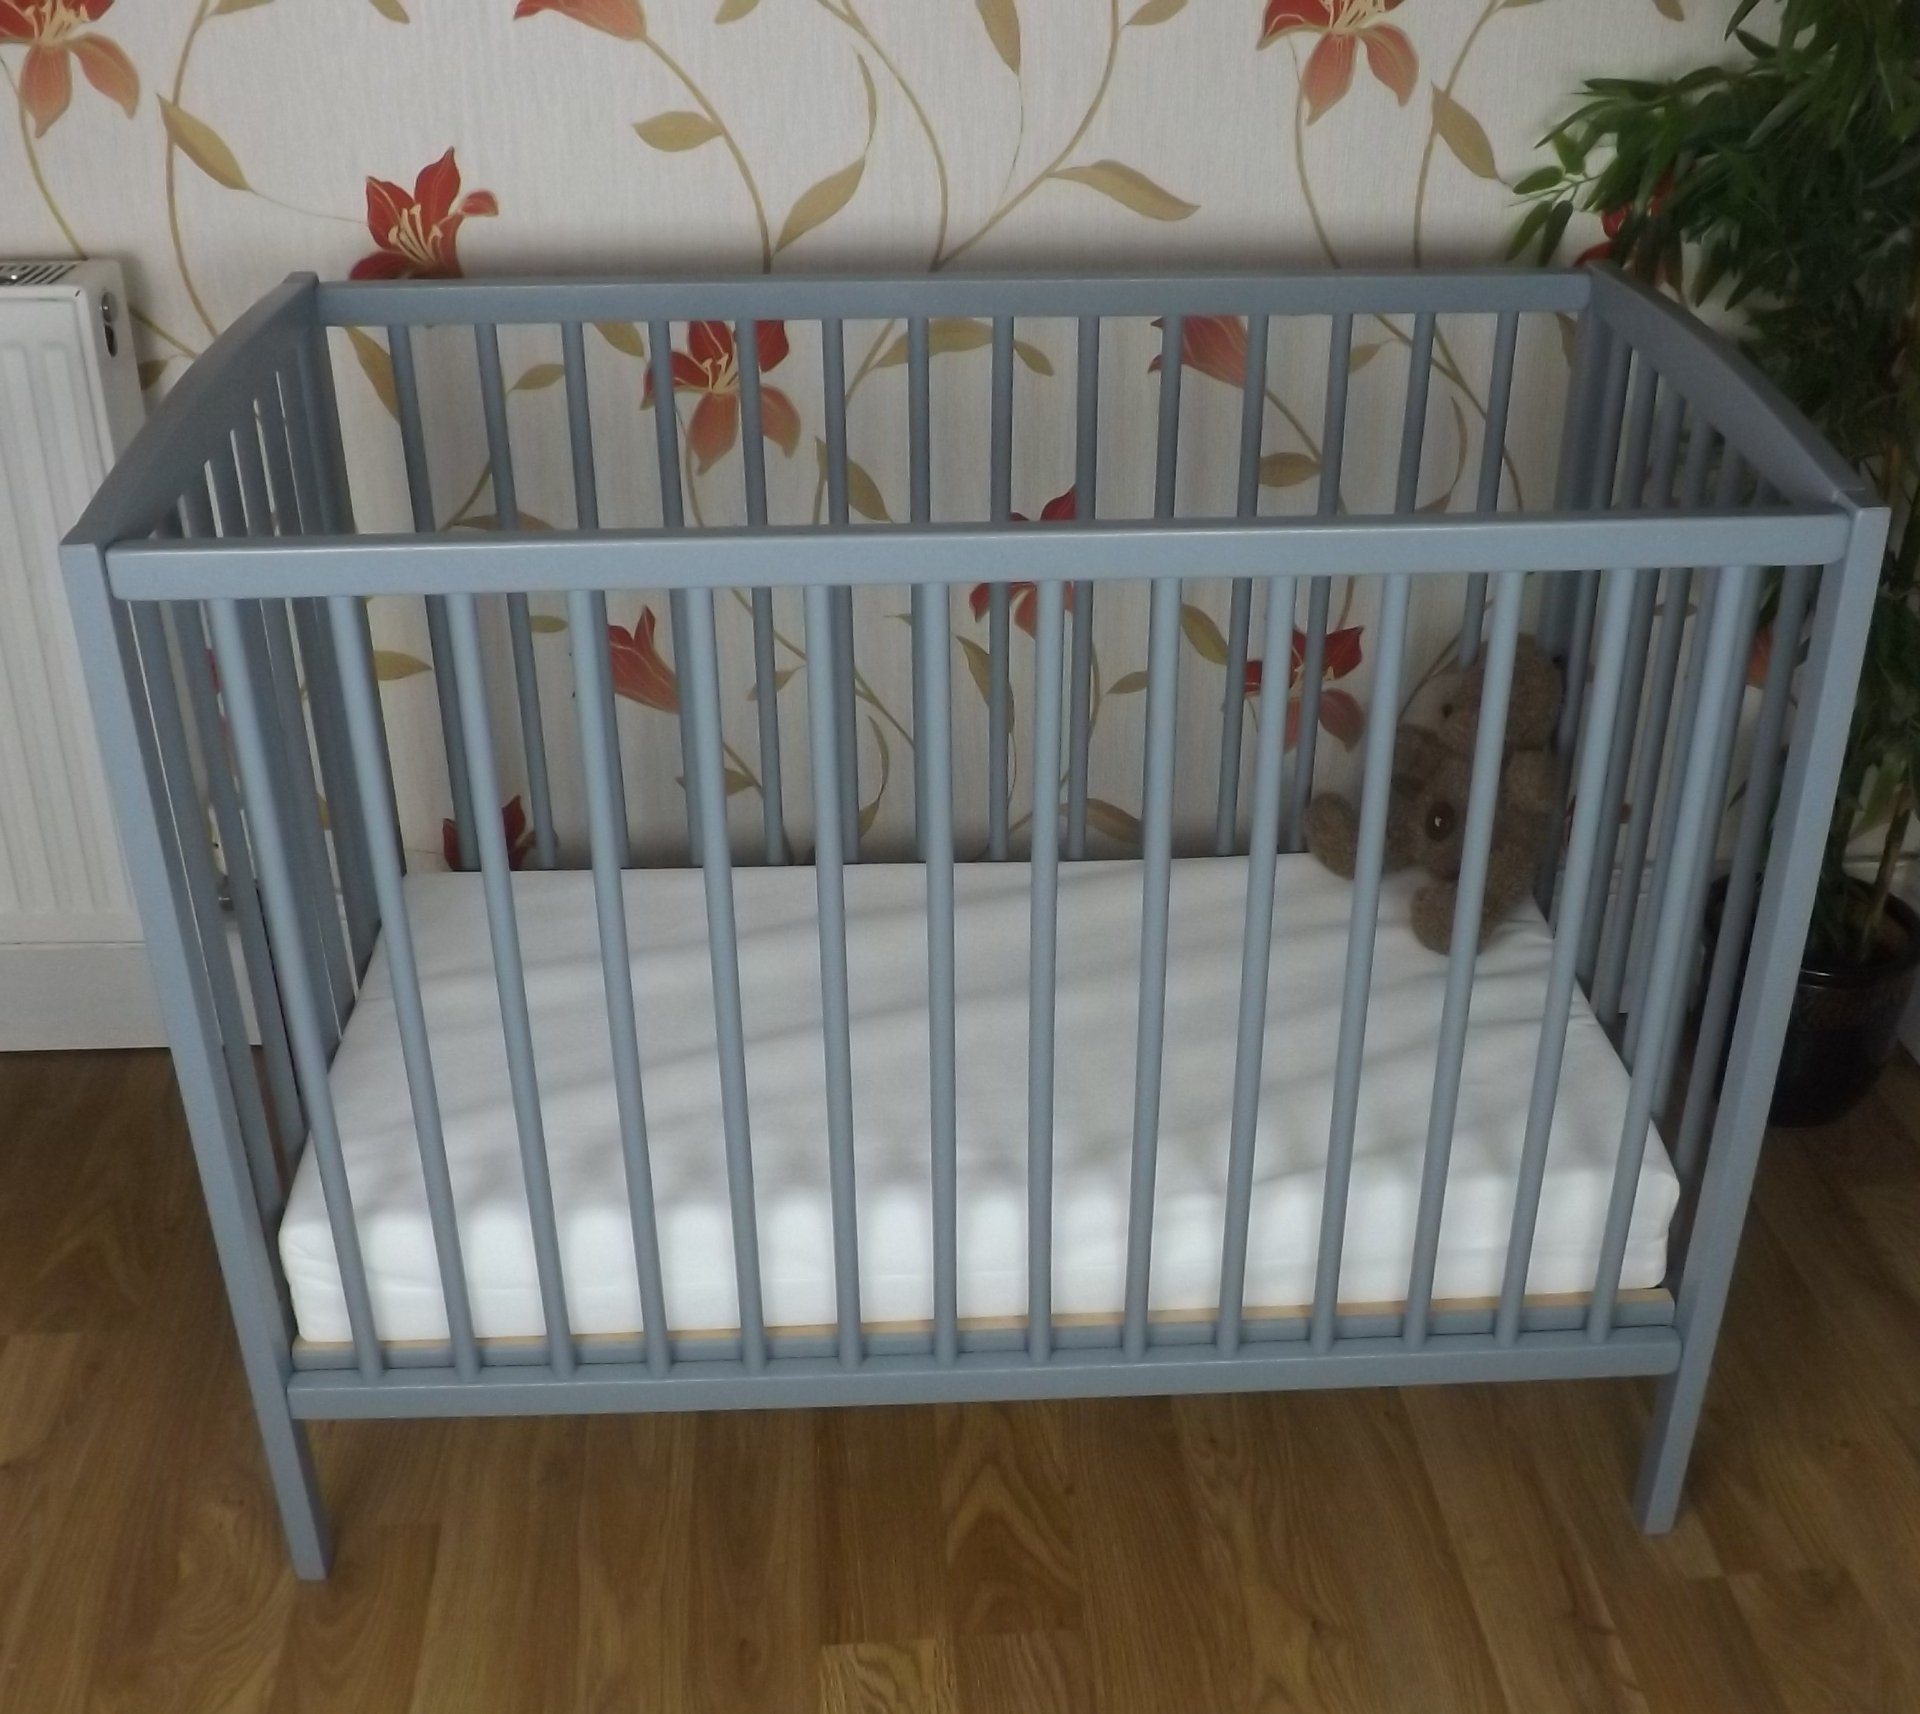 SPACE SAVER SMALL COT 4 BABY / + MATTRESS/ Grey / Little Cot / 100 x 52.5 CM /Perfect for Small Rooms ...   2